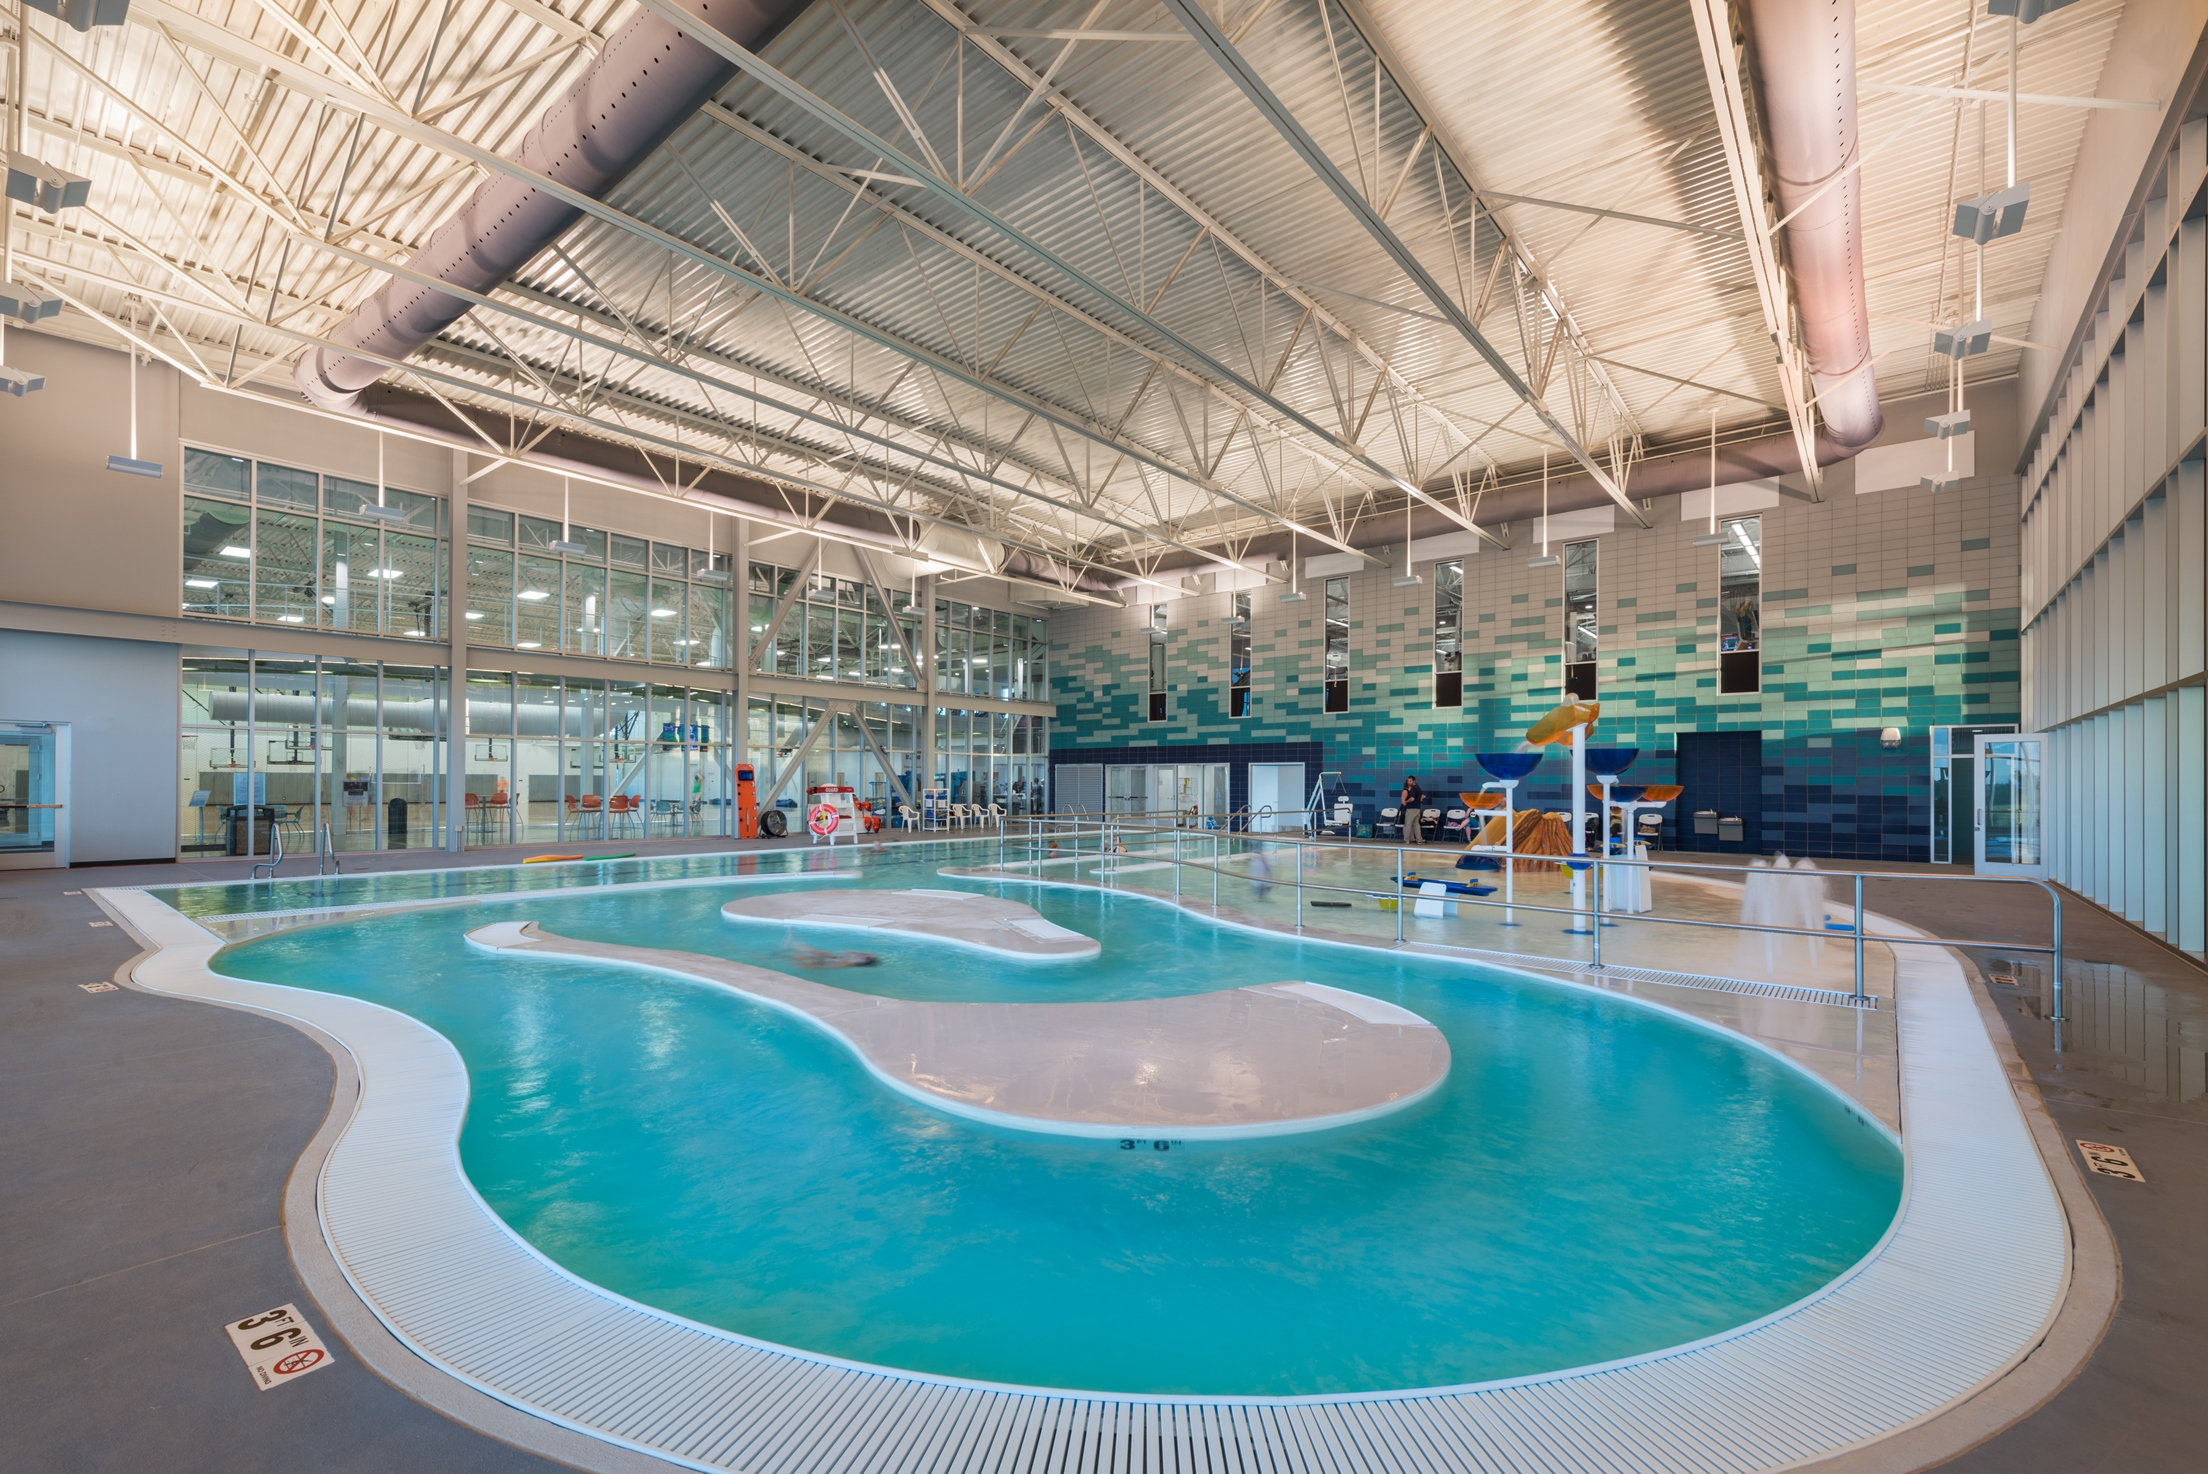 Workman Sports Complex Pool Area | Poettker Construction